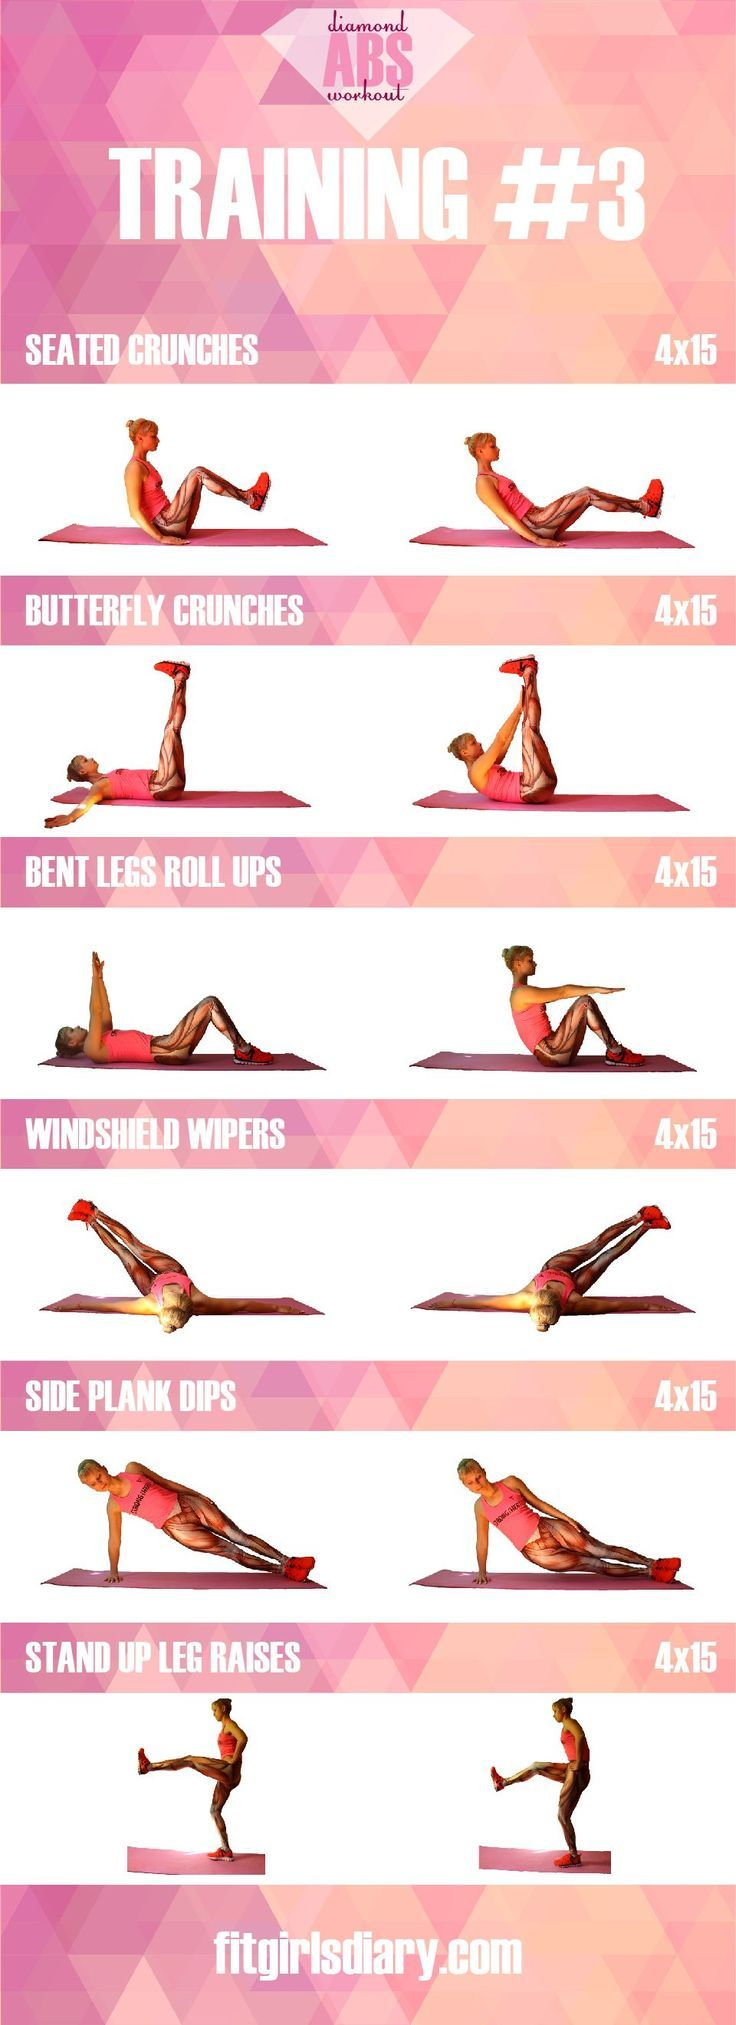 Diamond Abs Workout - Collection Of The Best Ab Exercises -5655